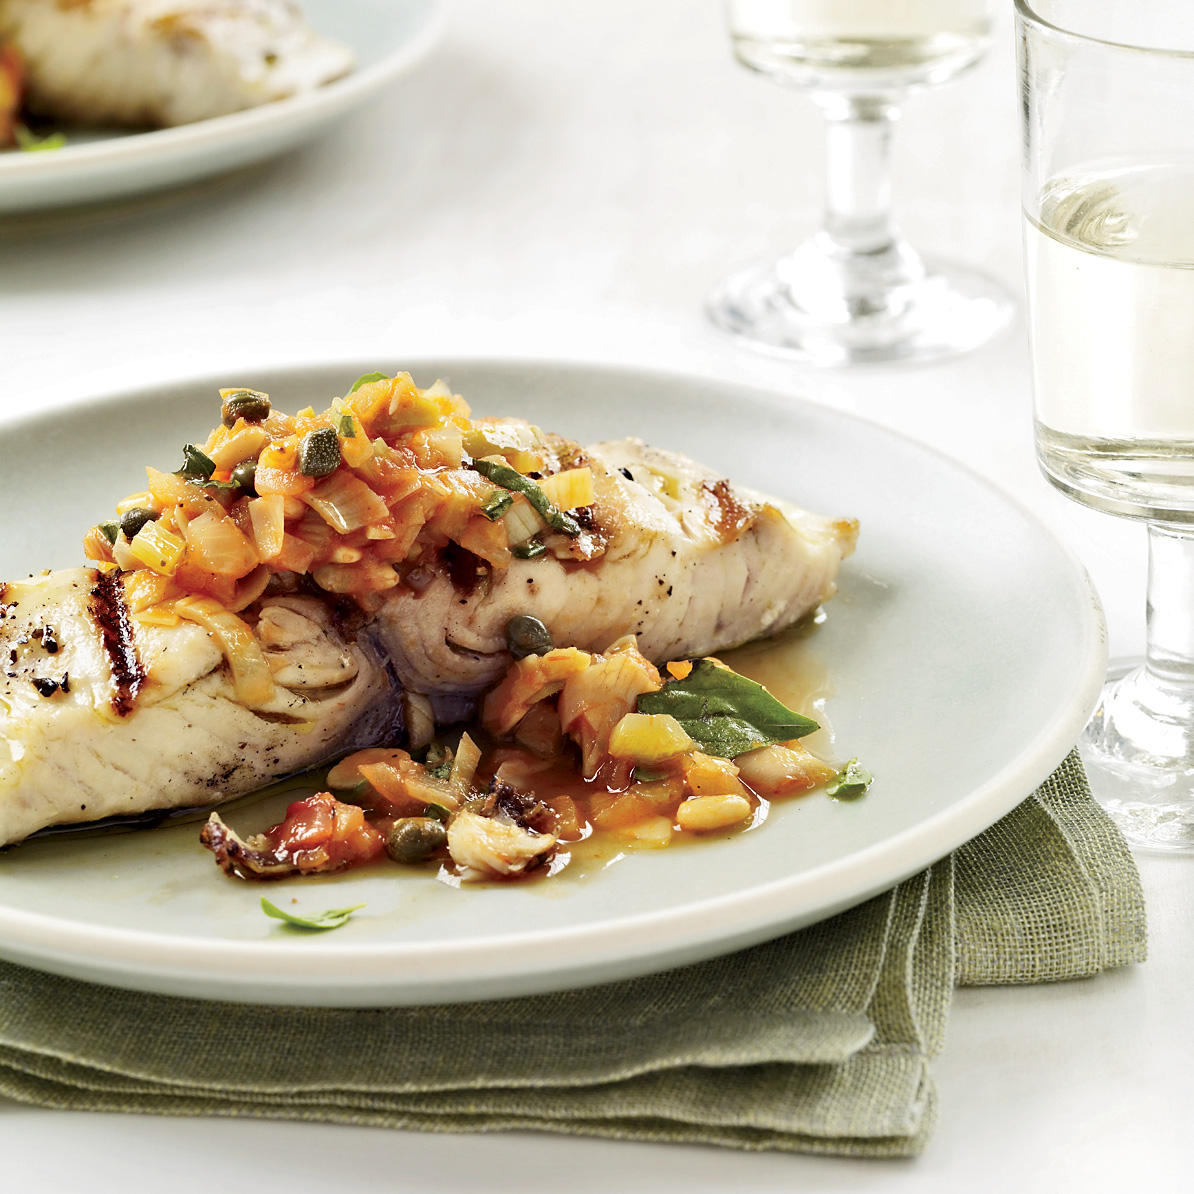 Grilled fish with artichoke caponata recipe michael for Grilled fish recipes